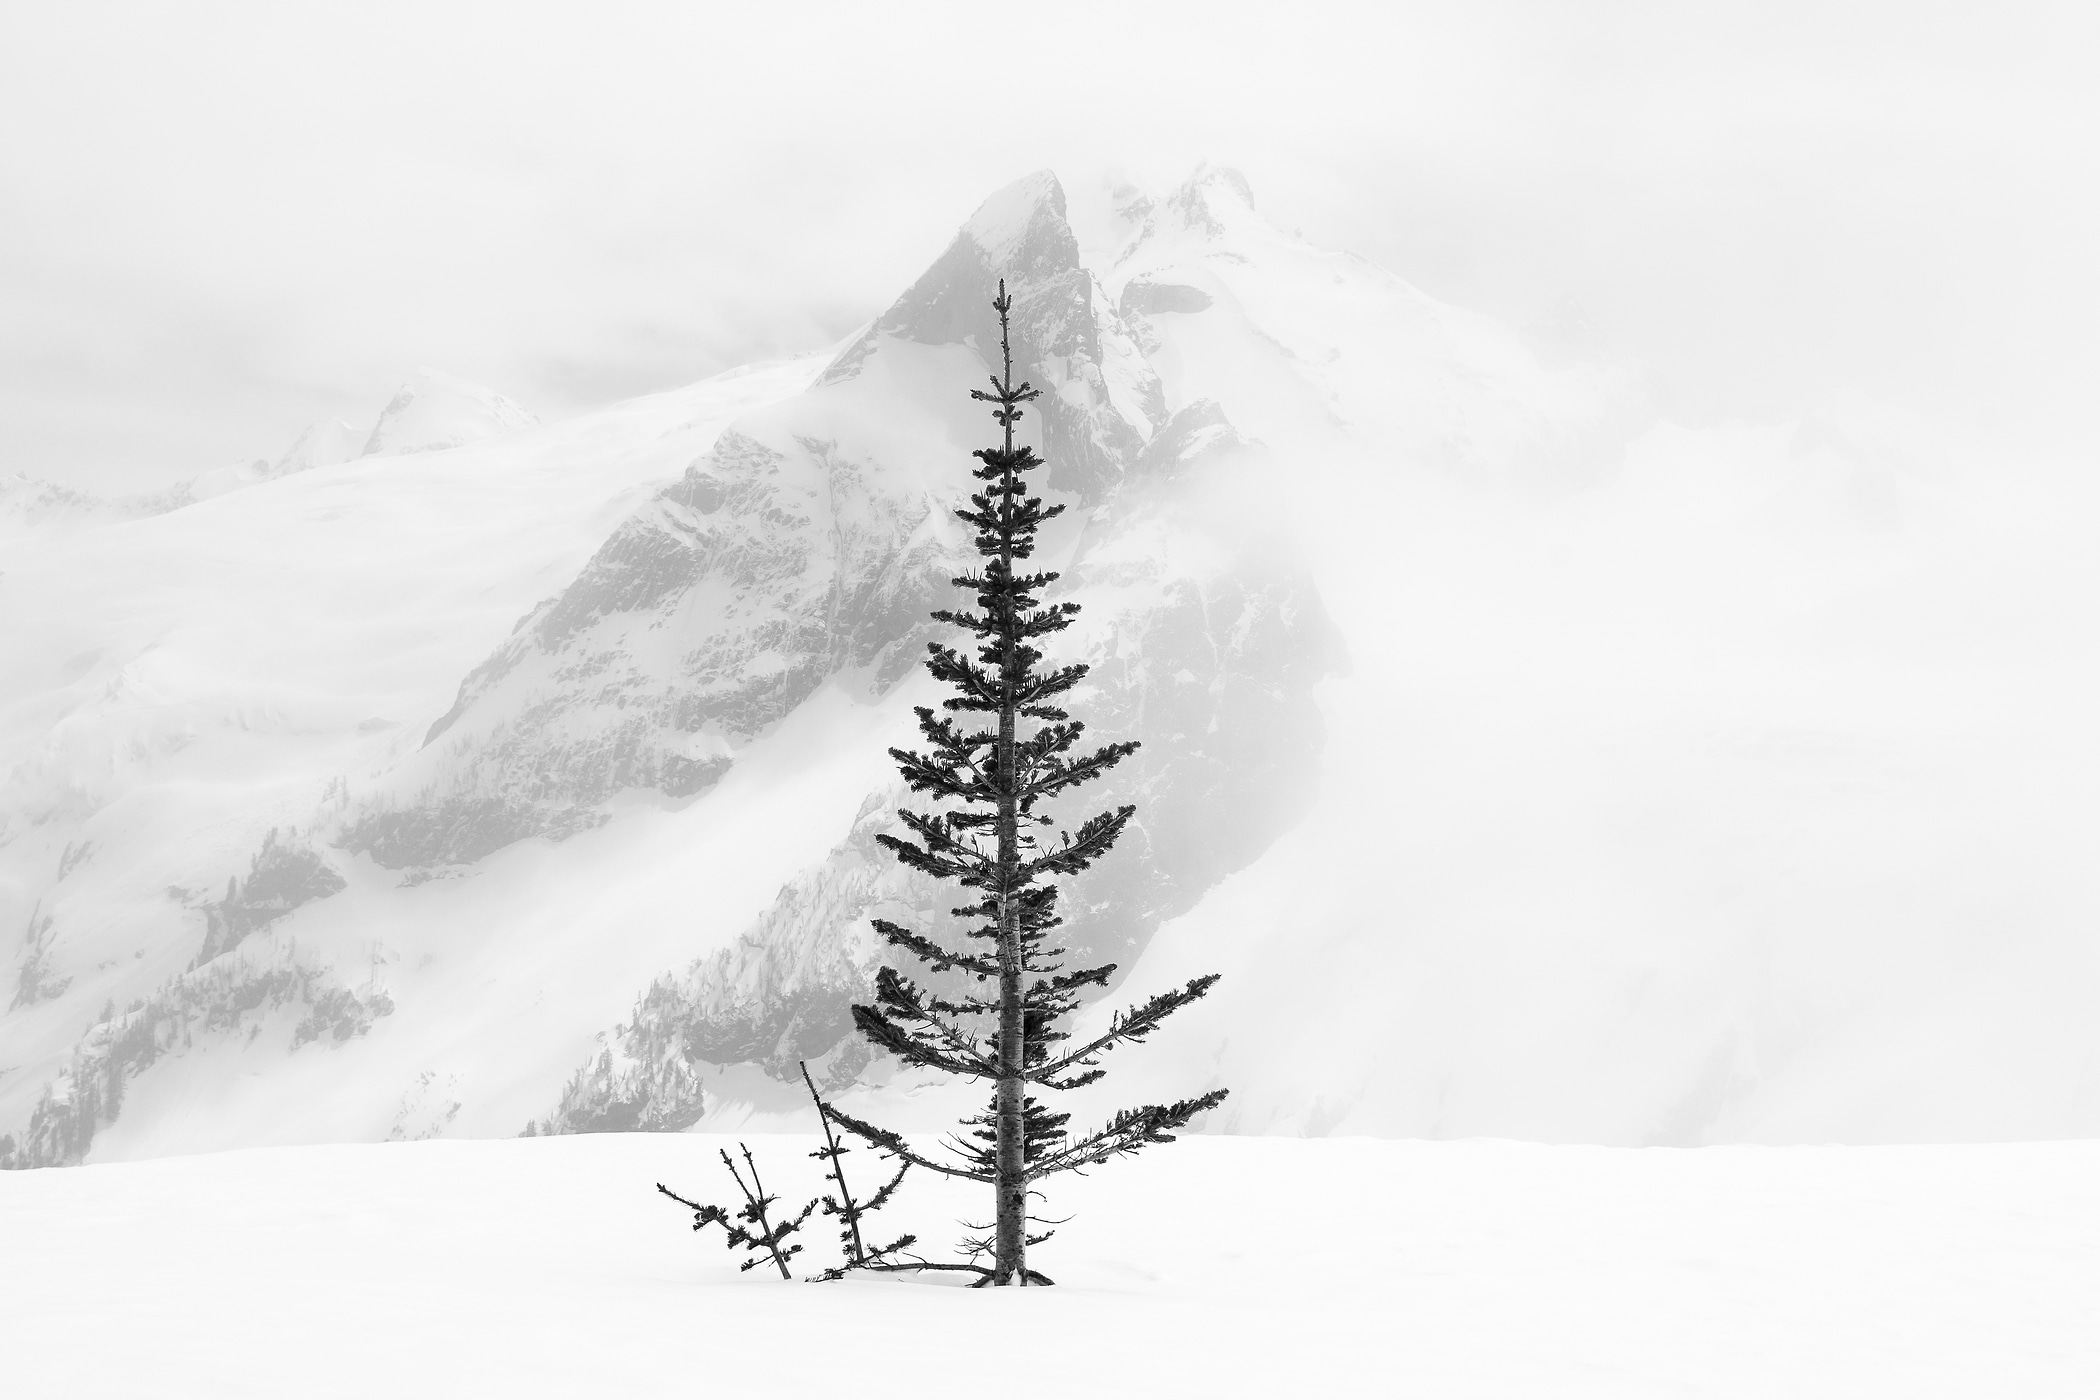 17 megapixels! A very high resolution, large-format VAST photo print of a lone tree in snow in front of a mountain; black and white photograph created by Scott Rinckenberger in Dome Peak, Glacier Peak Wilderness, Washington